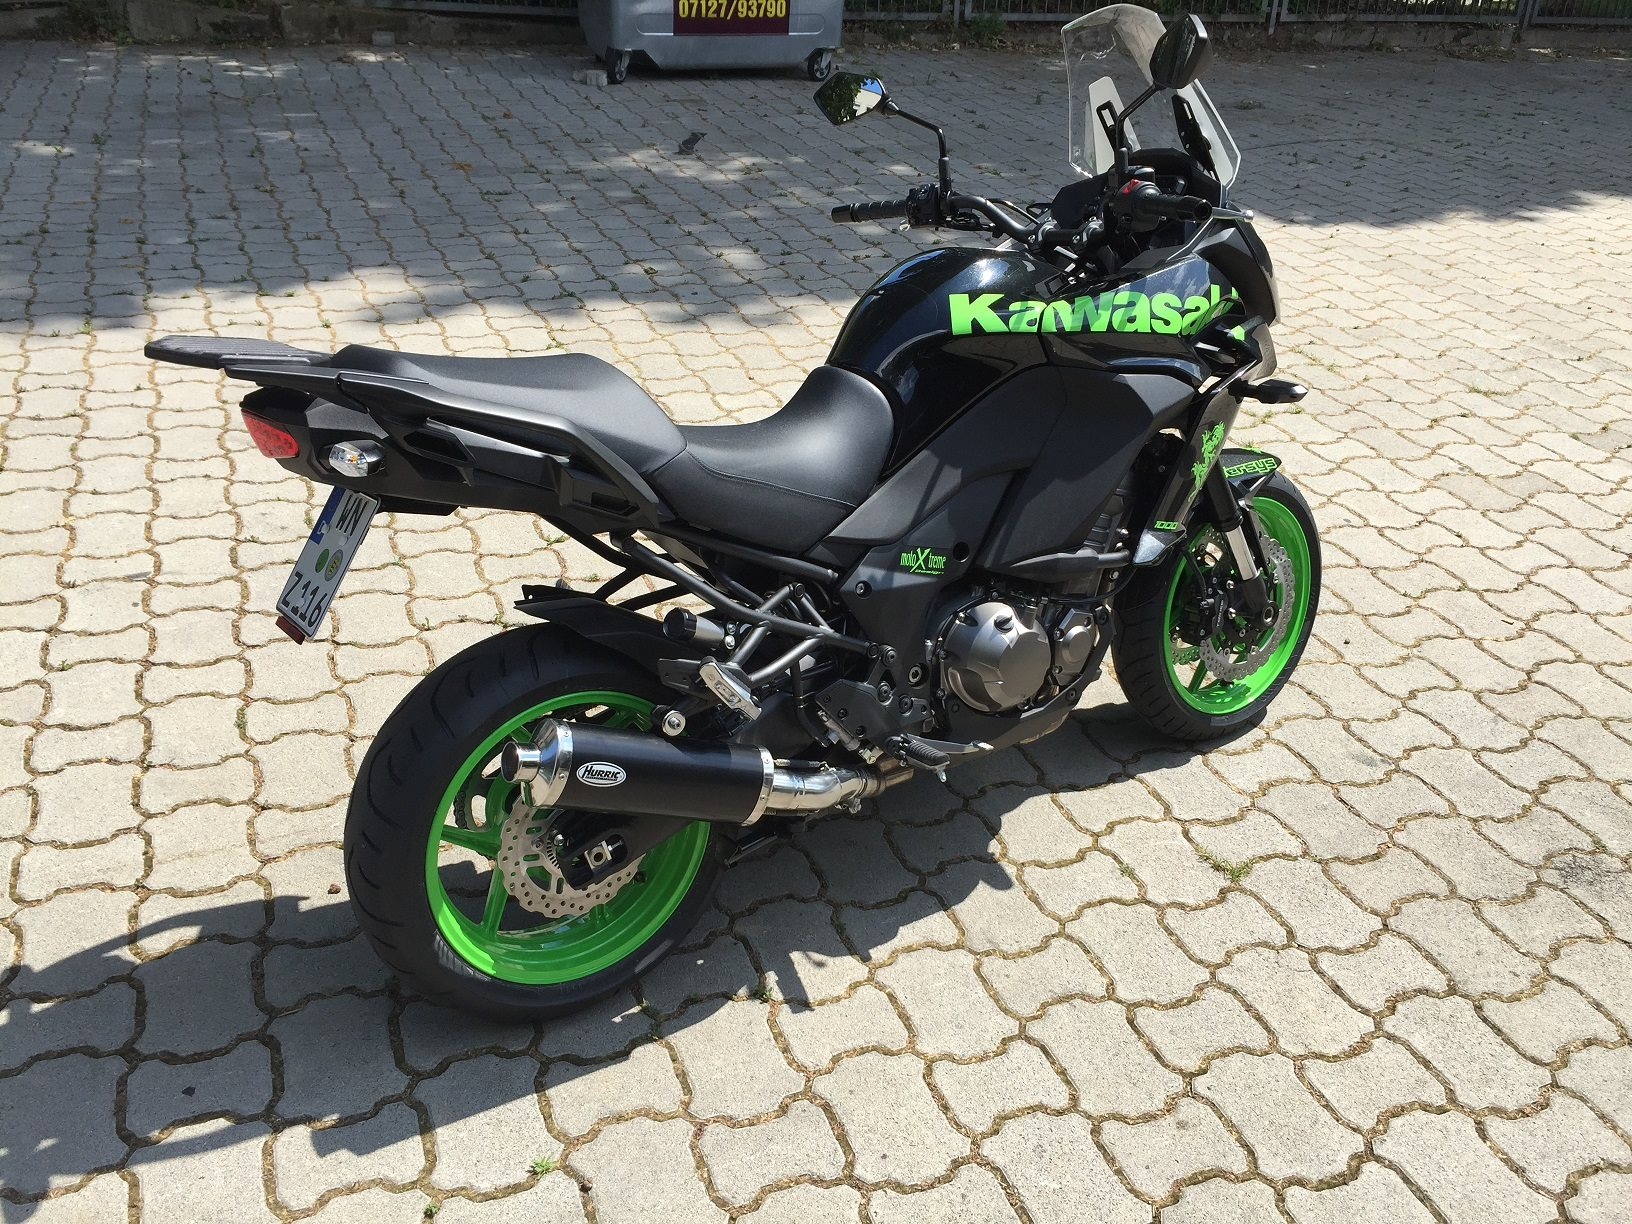 umgebautes motorrad kawasaki versys 1000 von motoxtreme gmbh. Black Bedroom Furniture Sets. Home Design Ideas